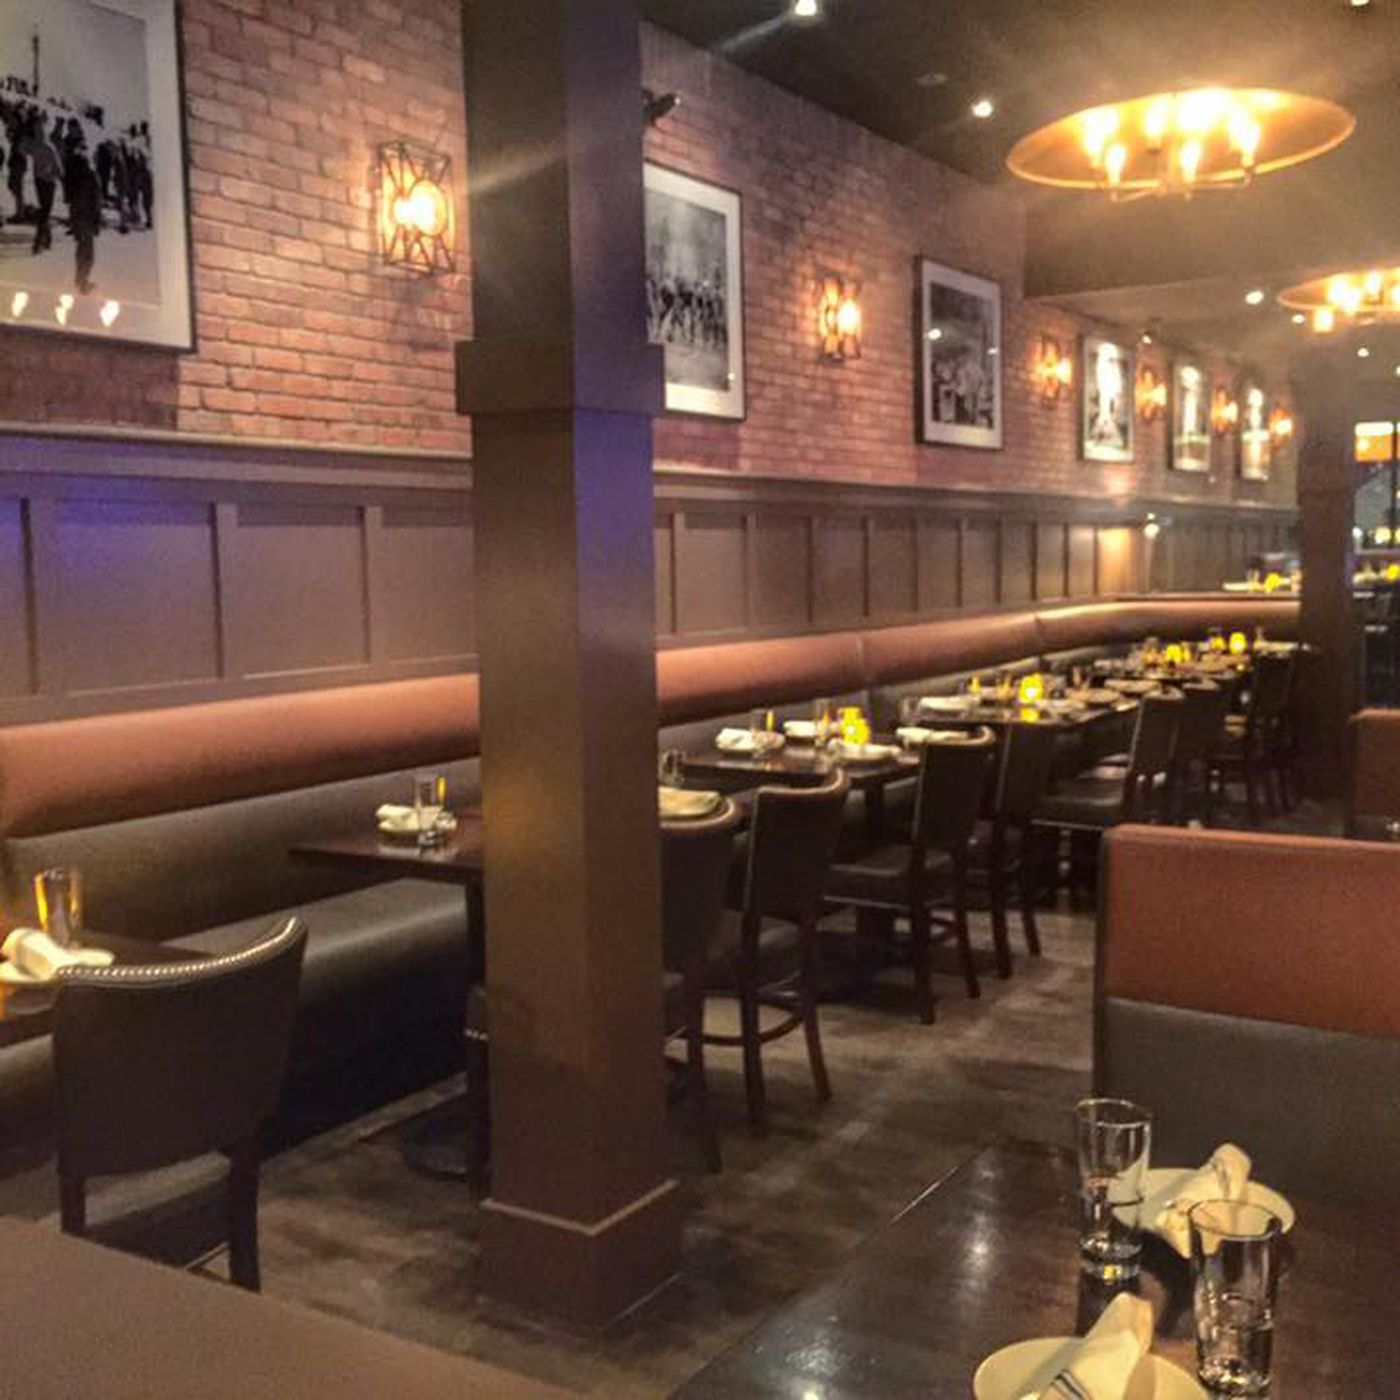 The Local Kitchen And Drinks Arrives In Woburn Eater Boston